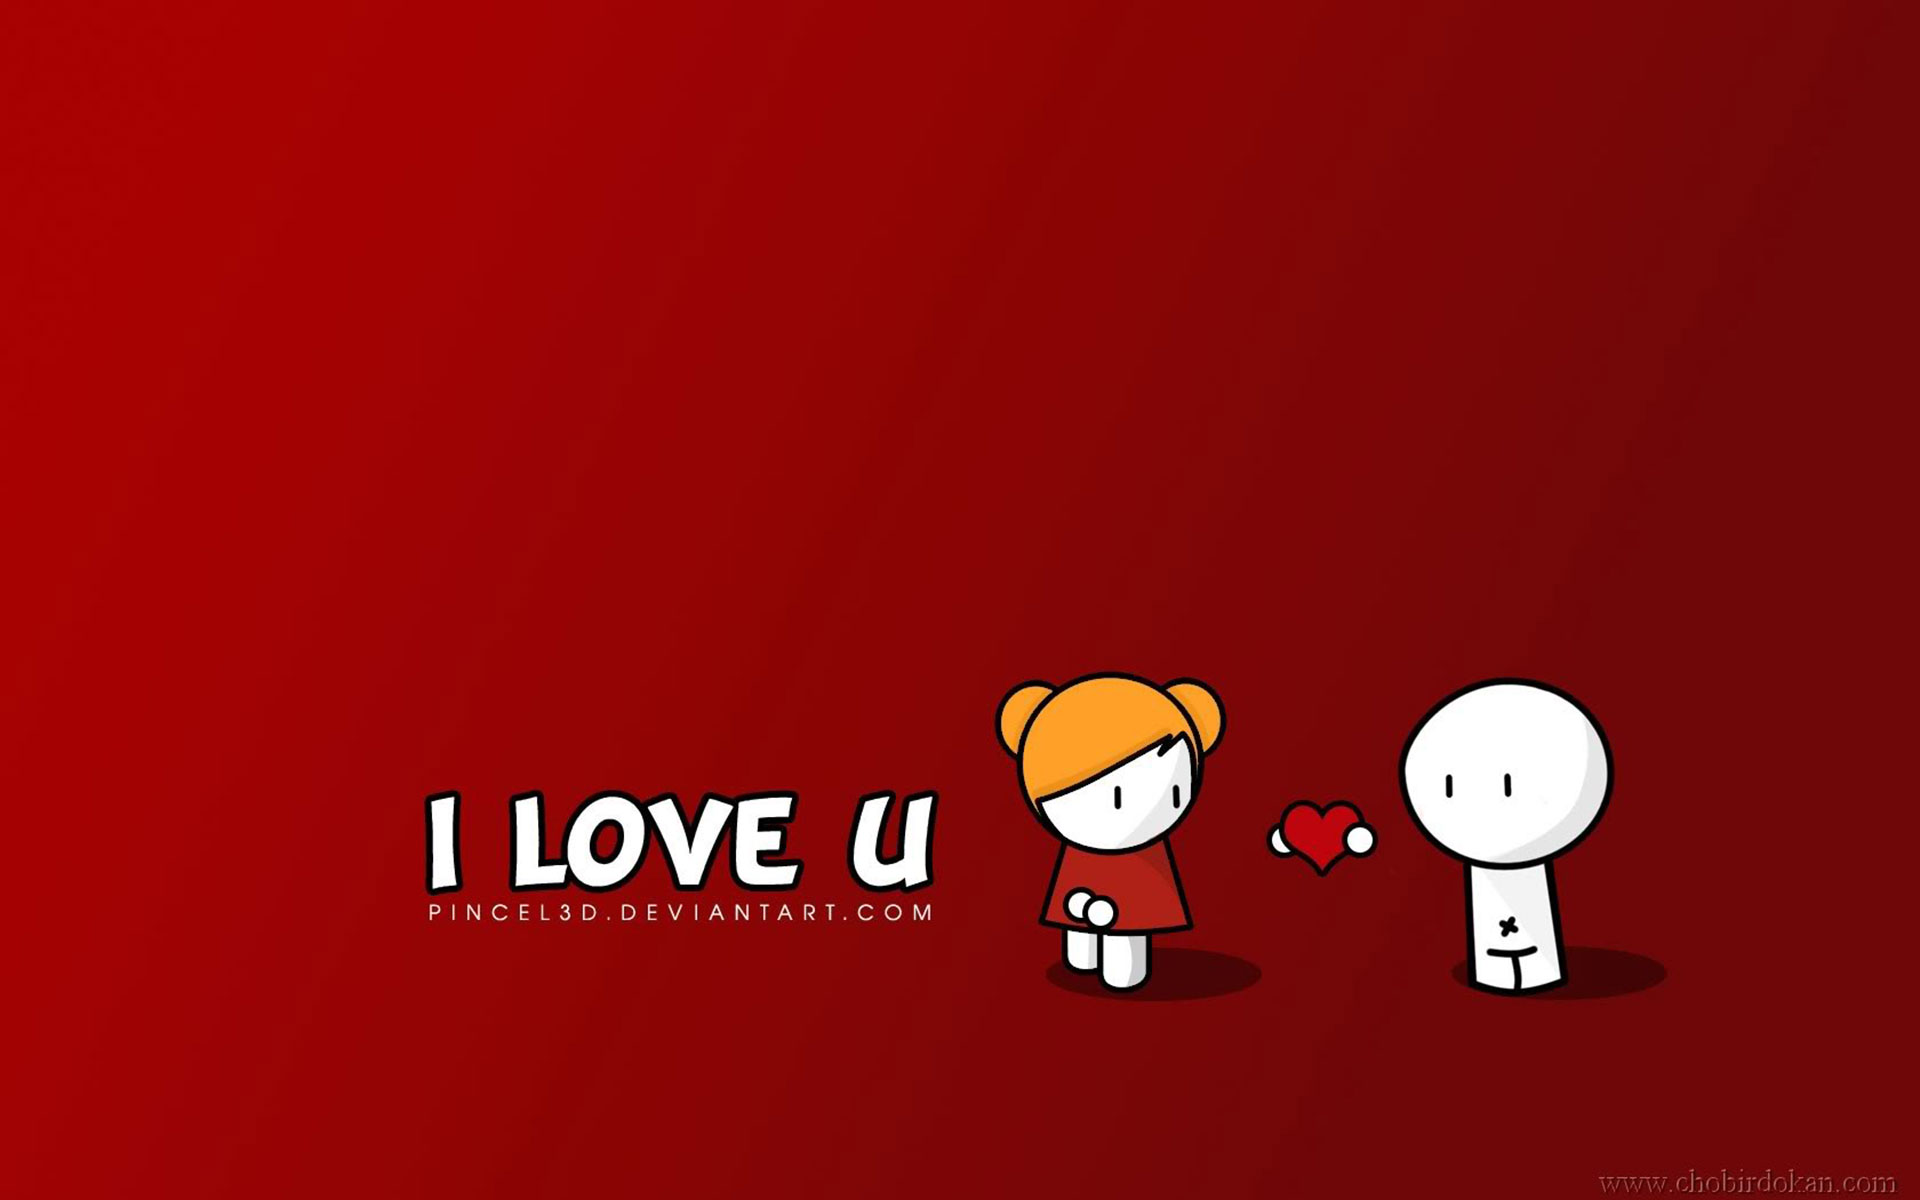 Love You Wallpaper 3d : 25+ Free HD I Love You Wallpapers cute I Love You Images